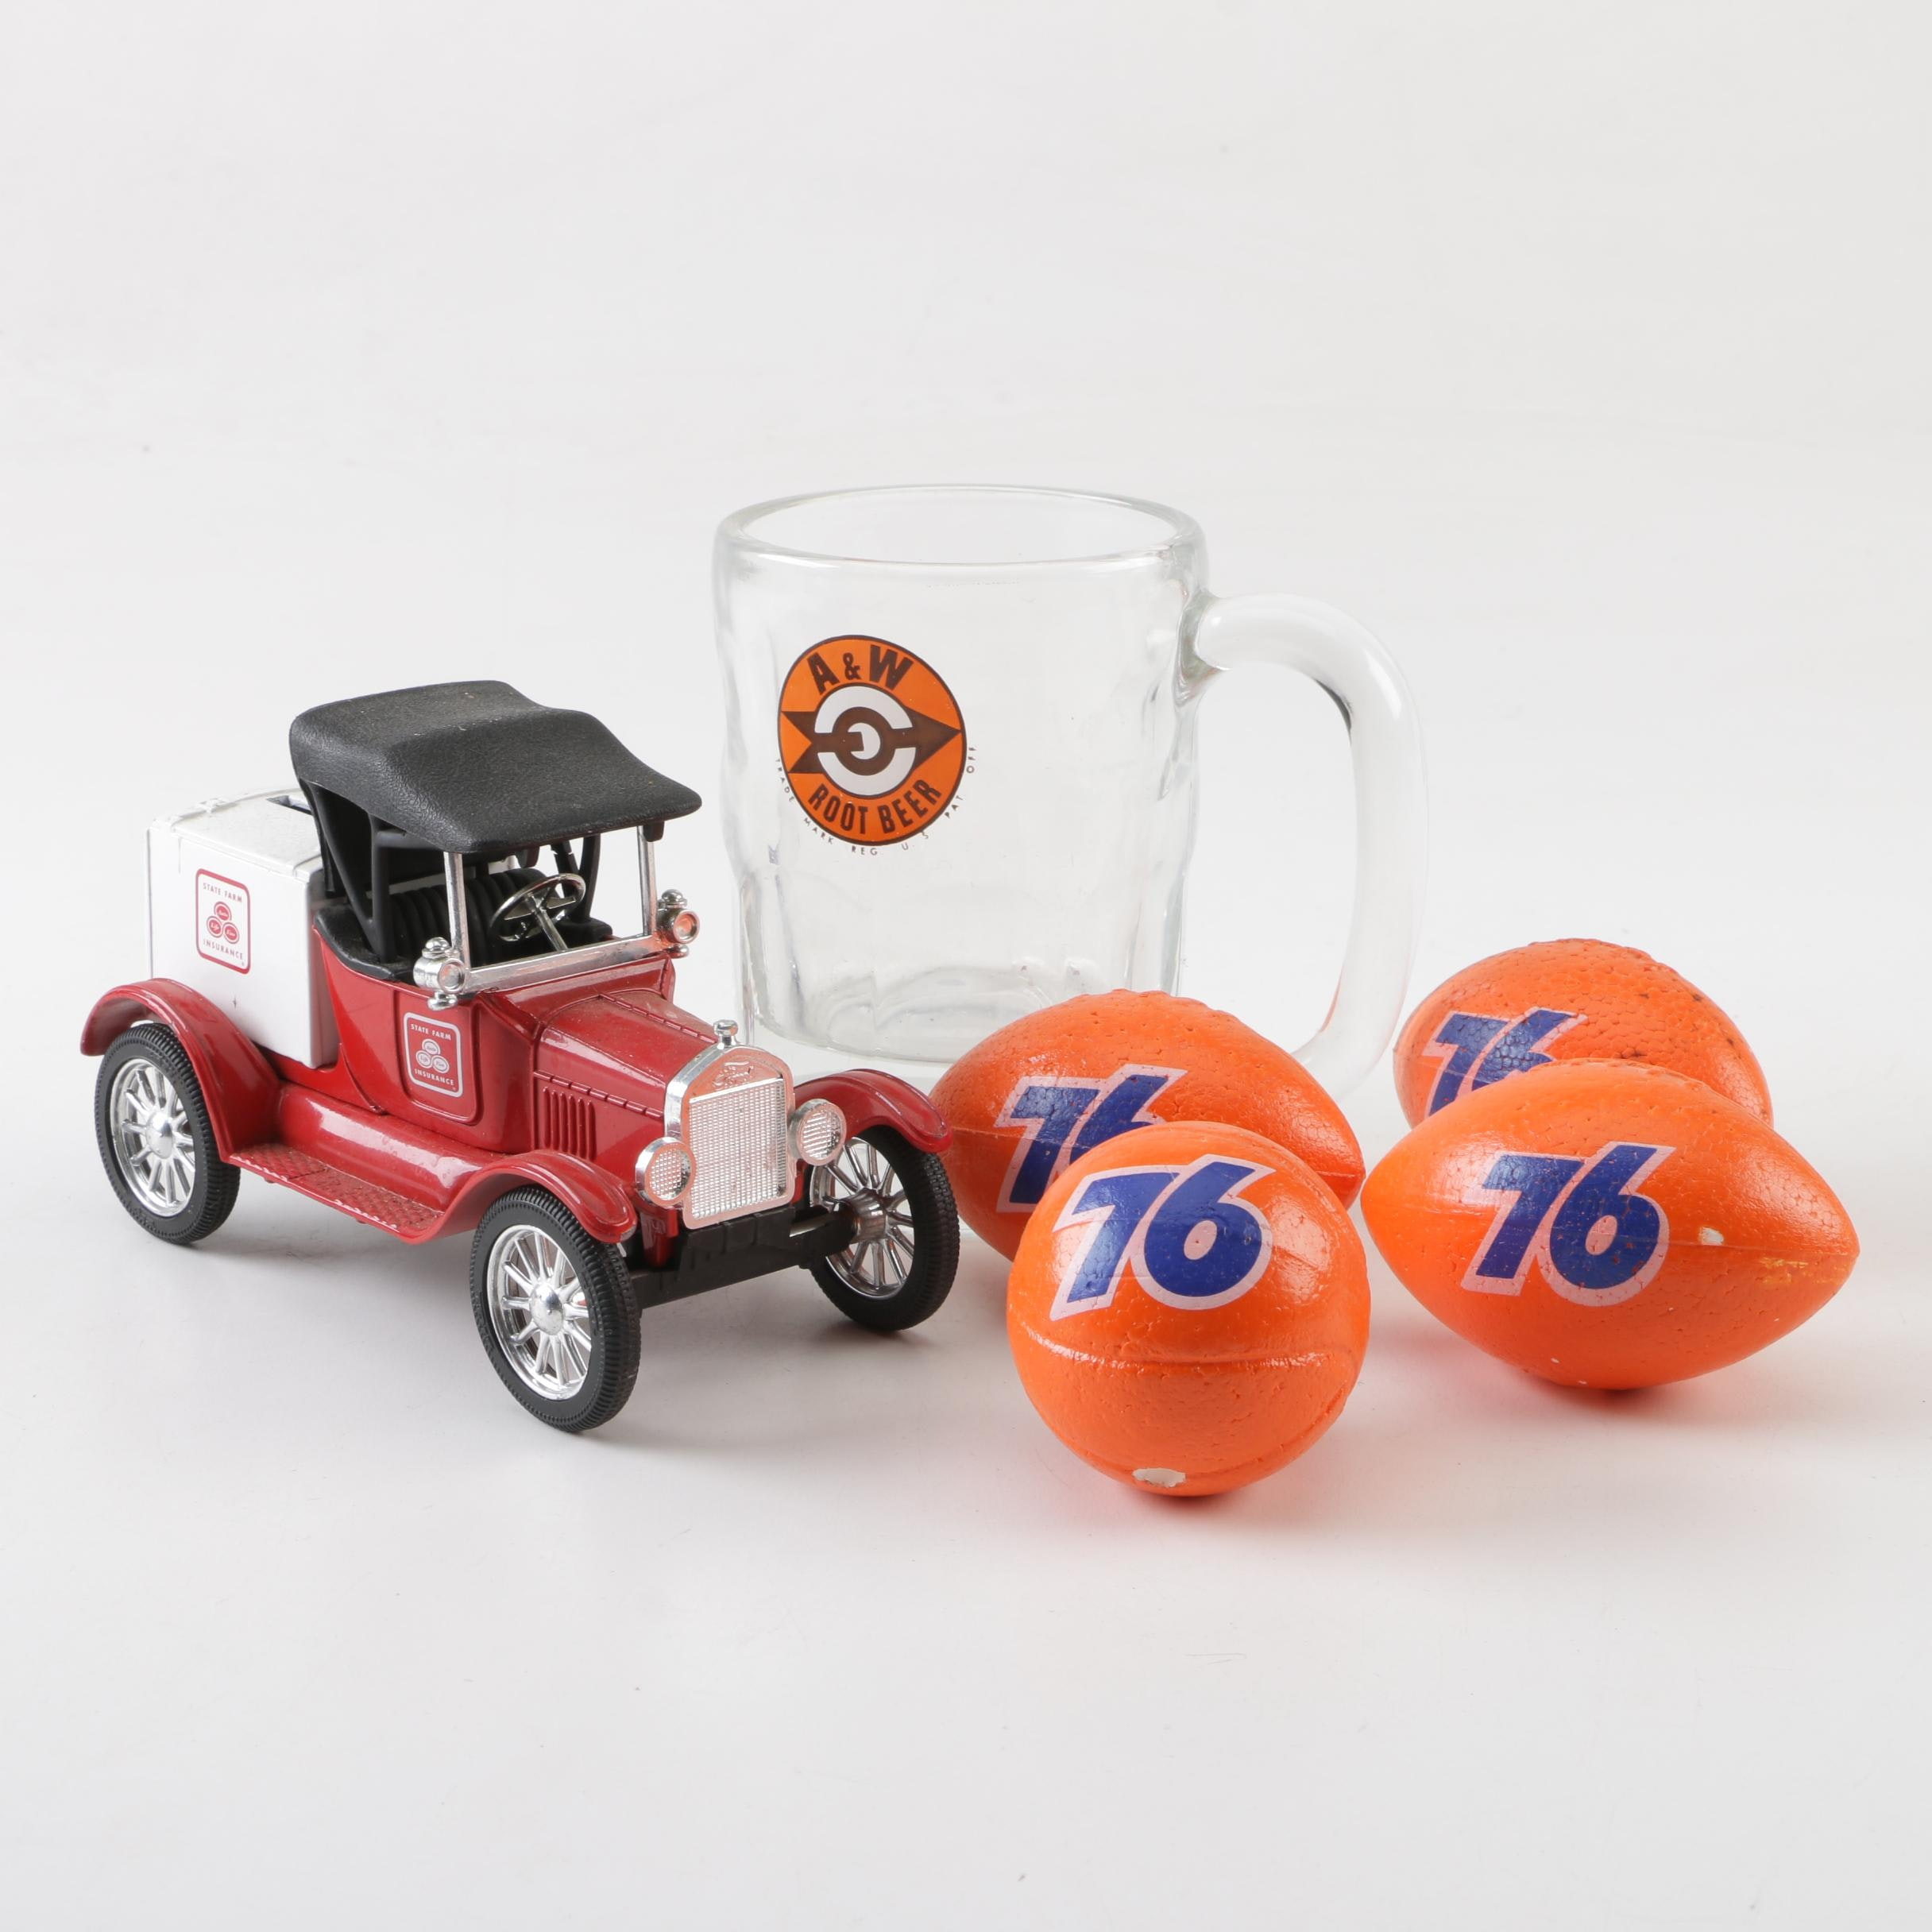 Union 76 Antenna Balls with A&W Root Beer Mug and Coin Bank